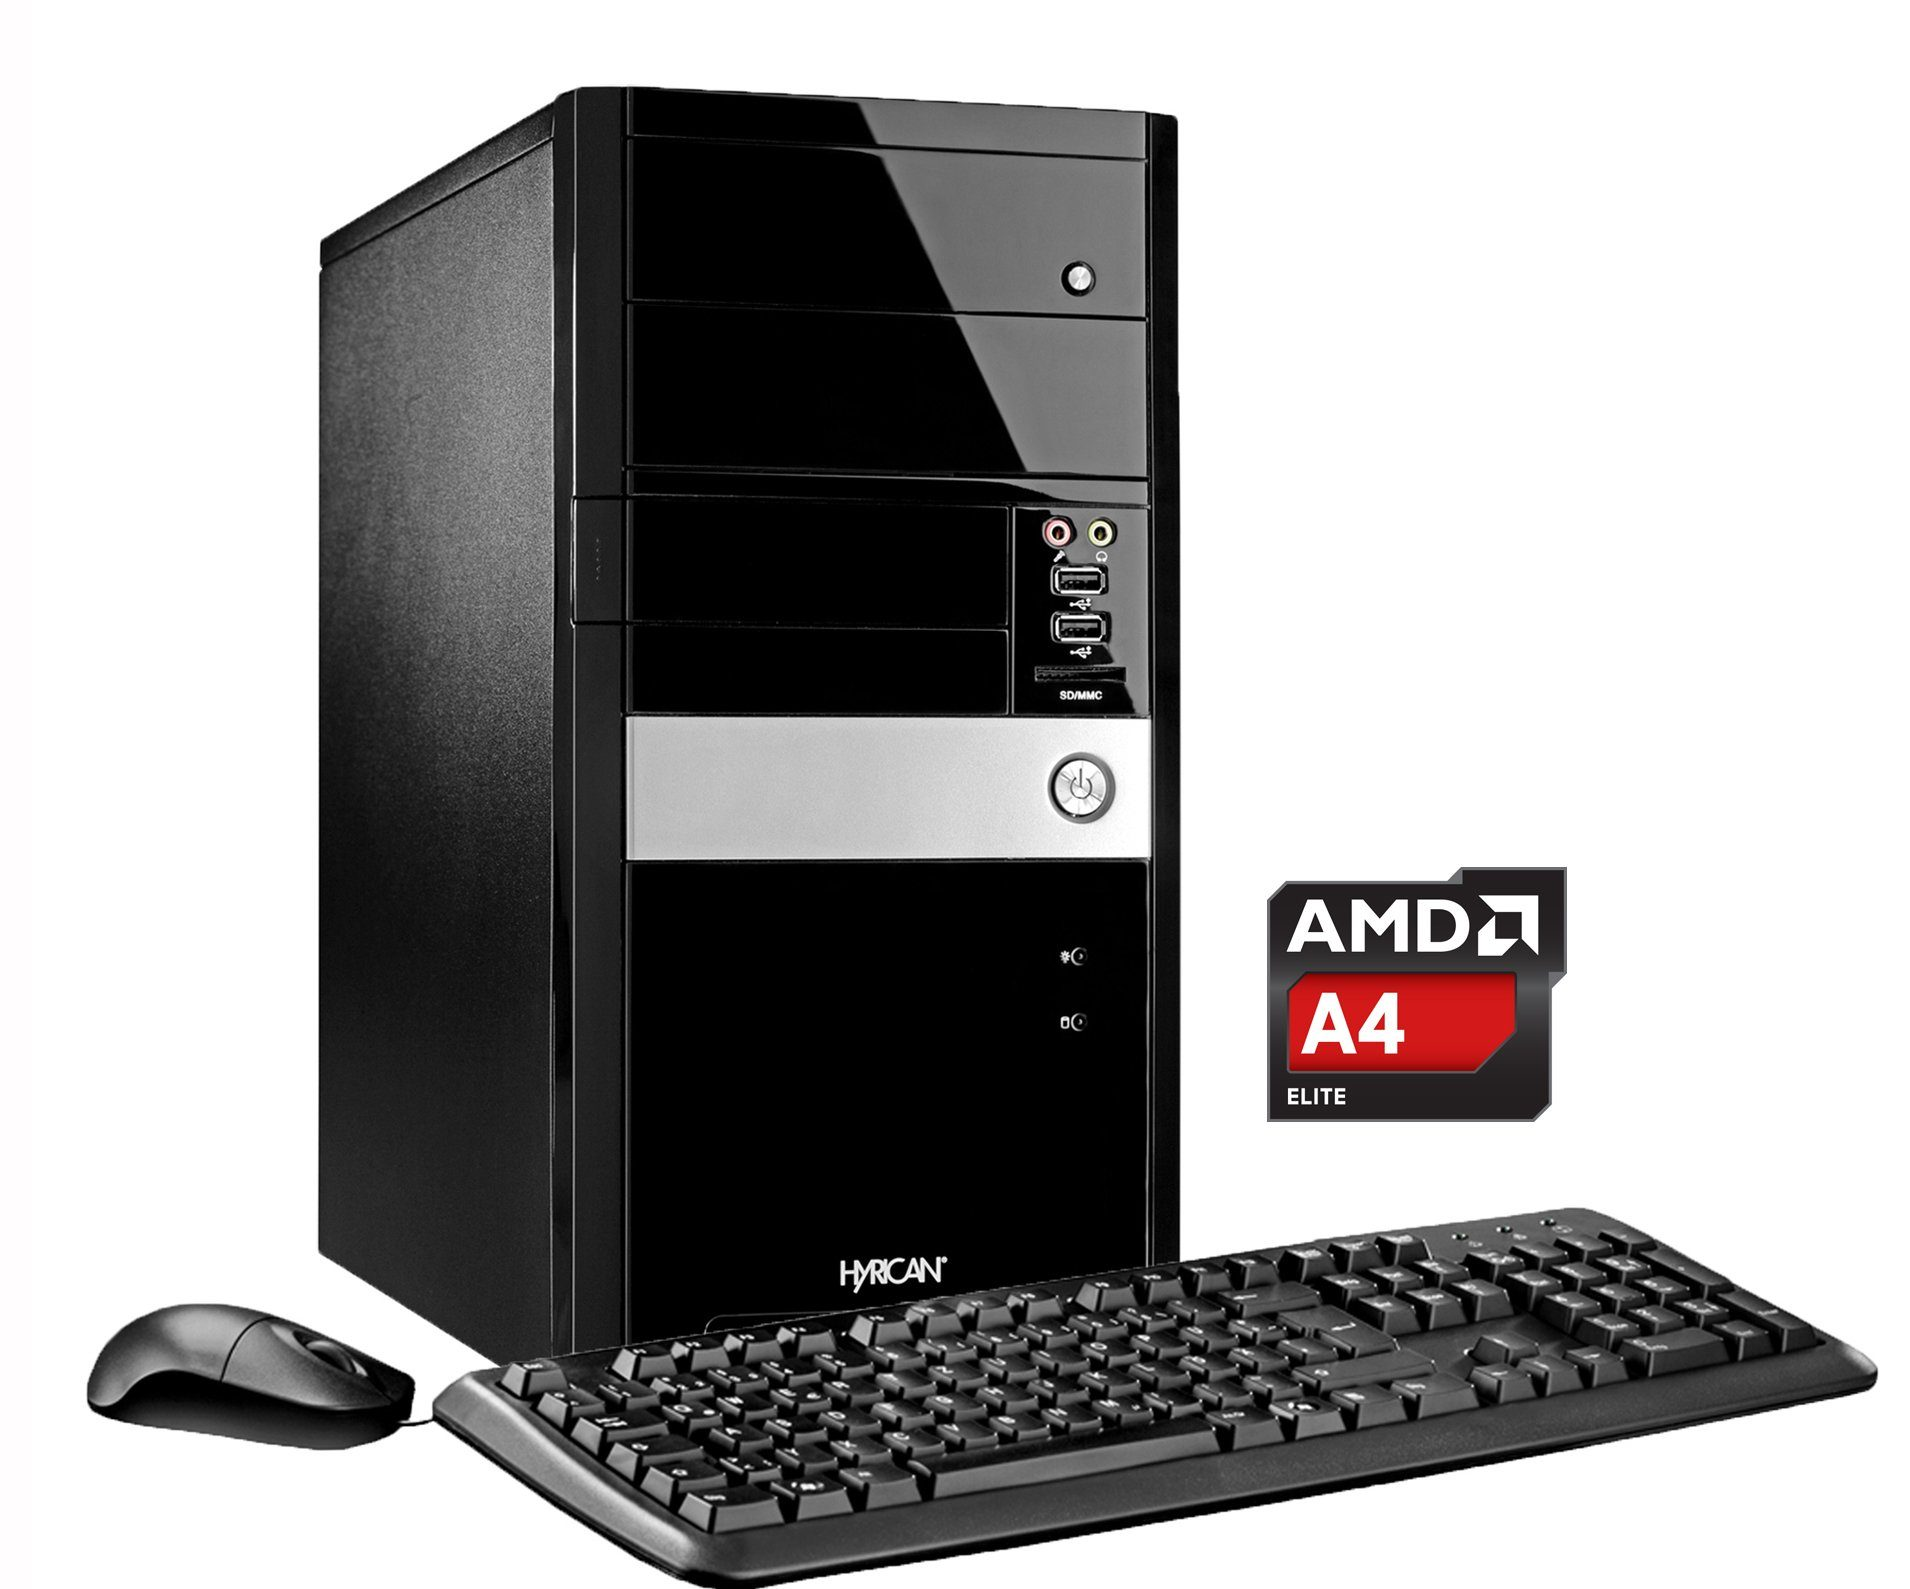 Hyrican PC AMD A4-7300, 8GB, 2TB, Microsoft® Office , W10 »Gigabyte Edition PC 5307«